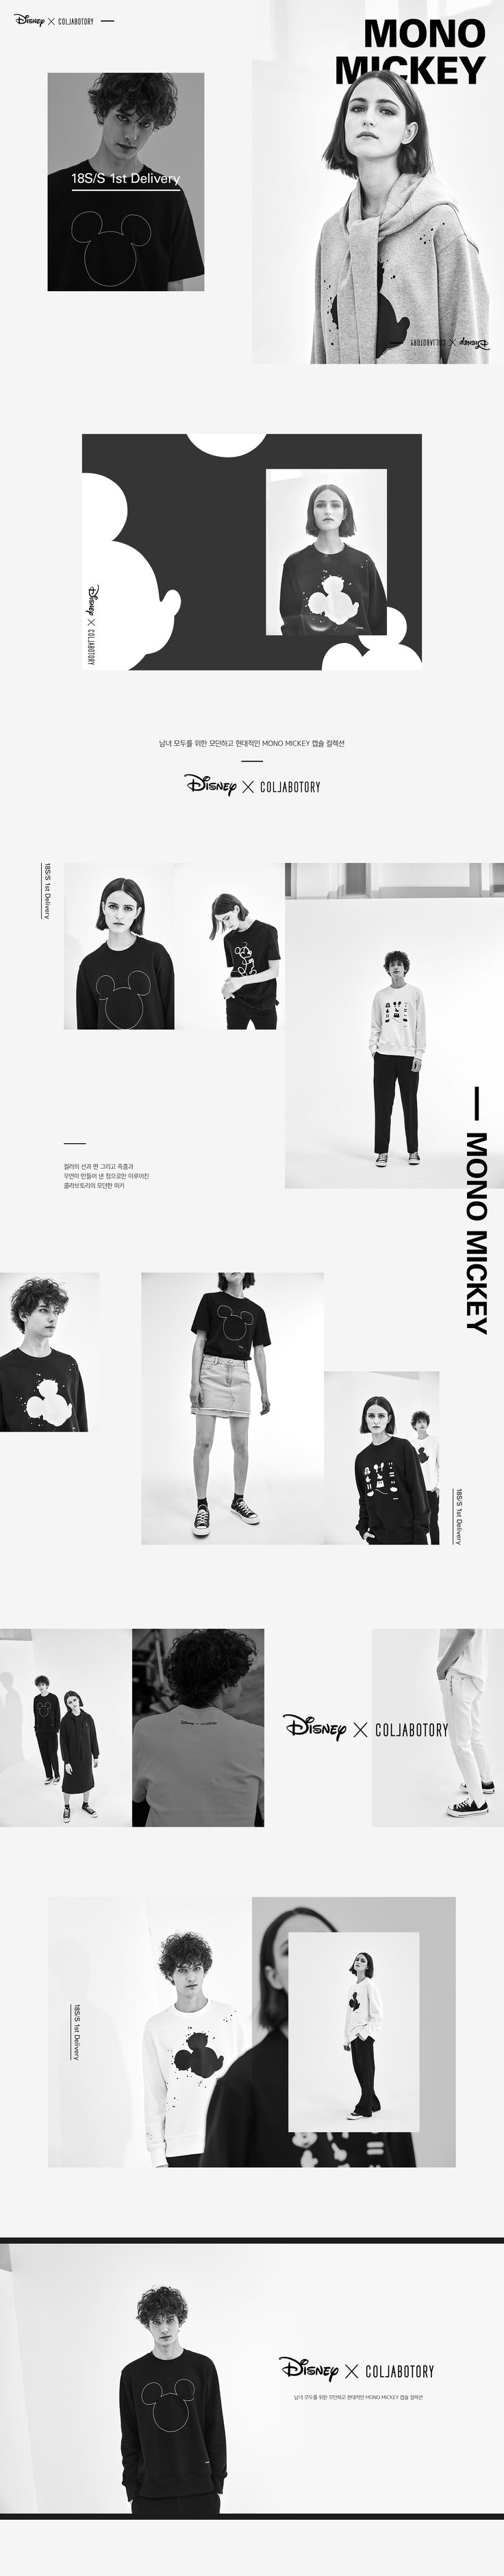 I think the black and white imagery is really powerful in this site. The arrangement of photos creates really nice flow through out the scroll and the minimal type allows the photos to create a clear message.